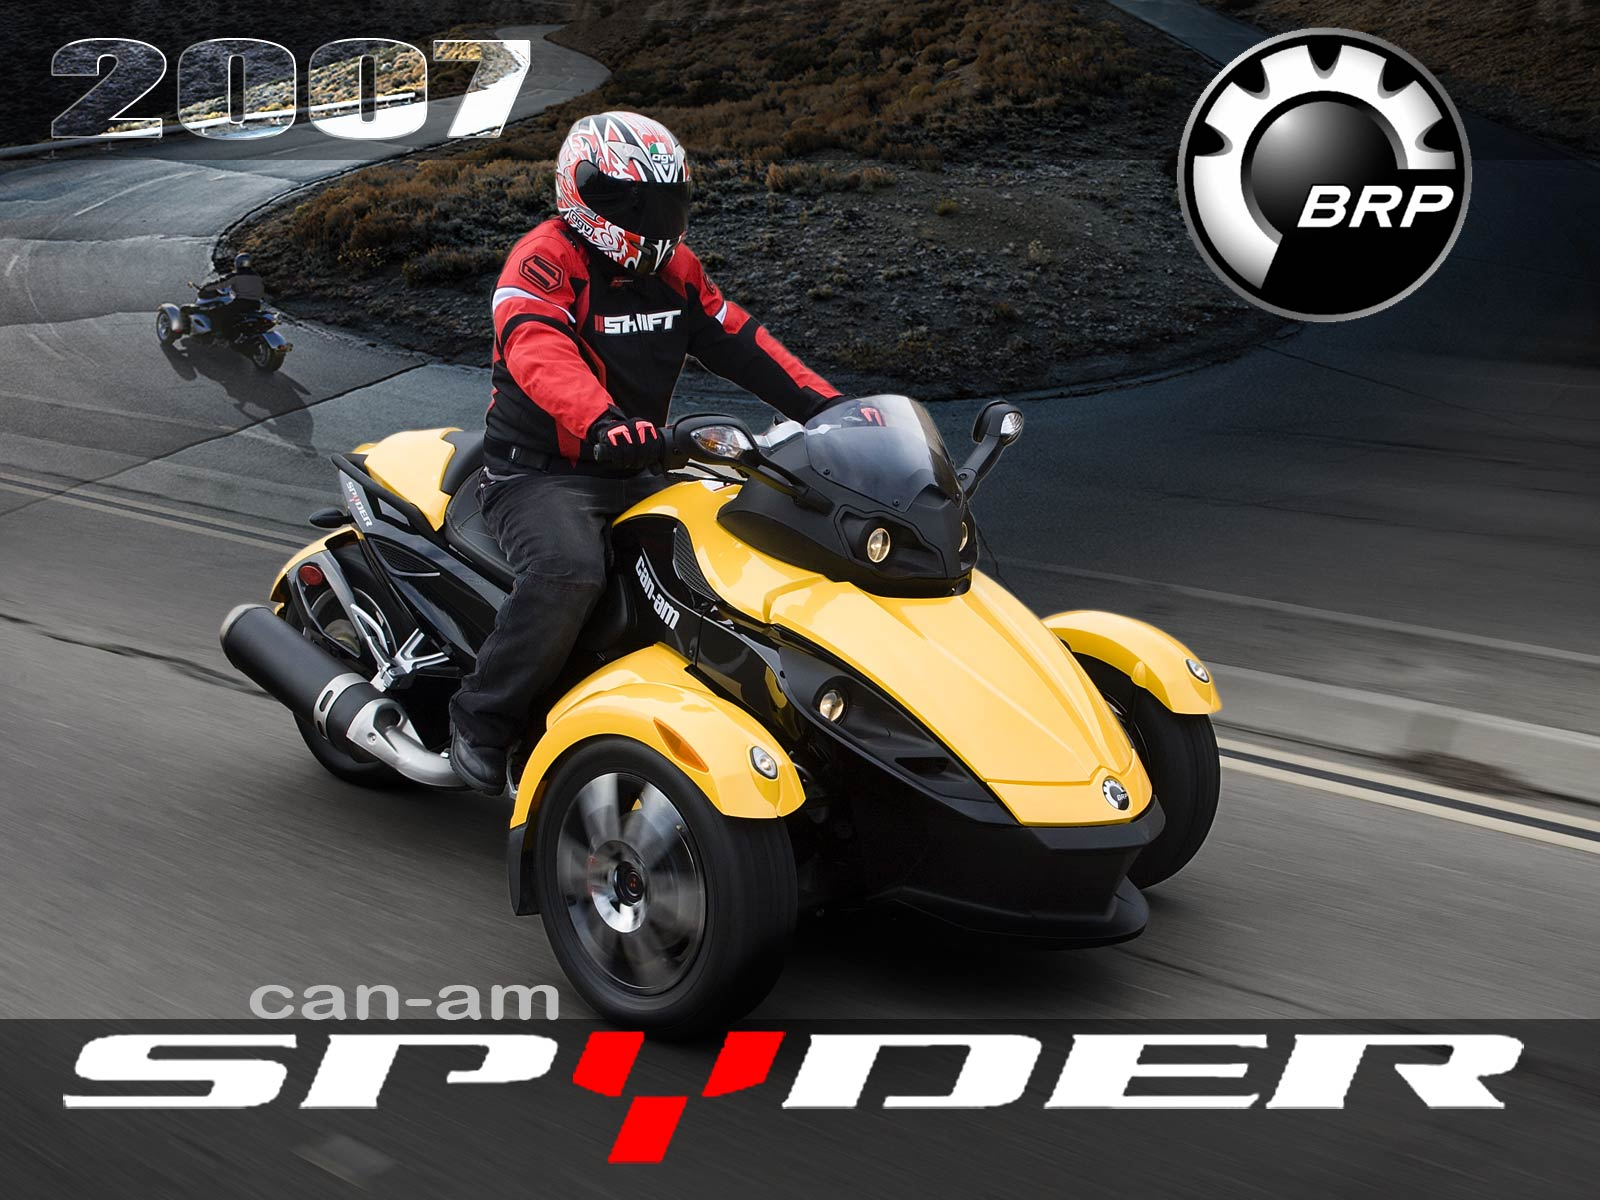 2008 Can-Am Spyder First Ride - Motorcycle USA